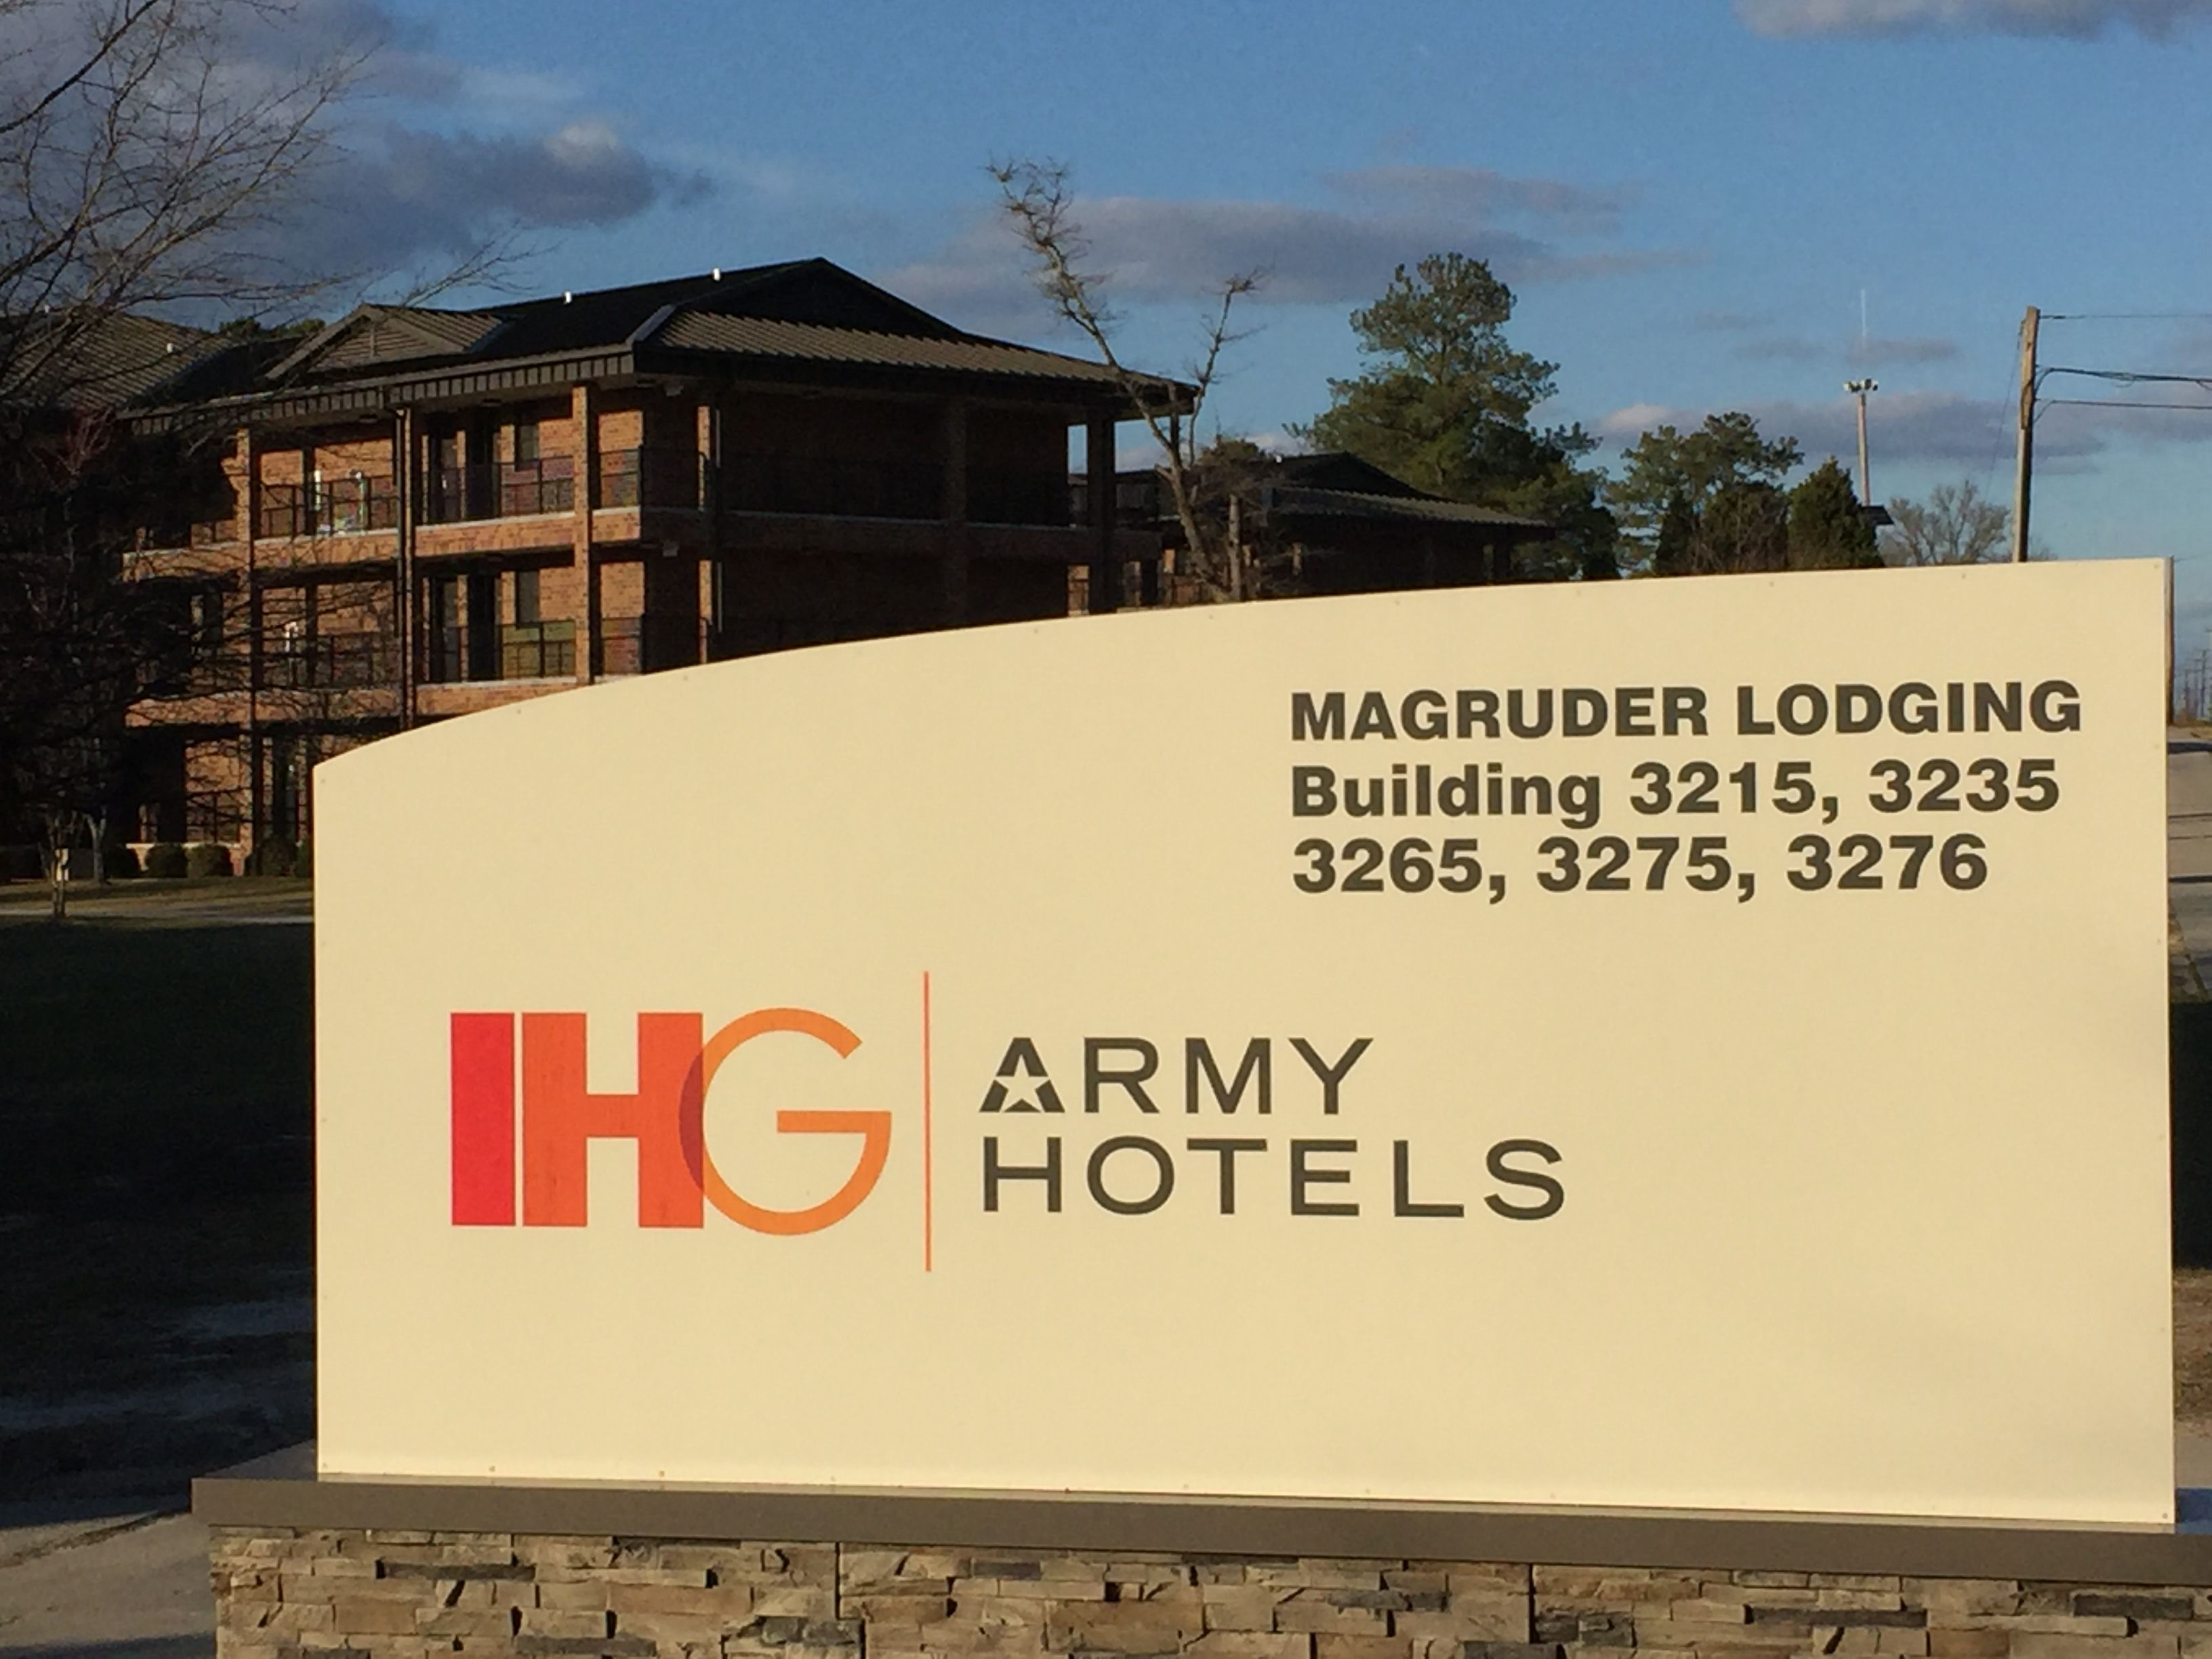 IHG Army Hotels Magruder Transient Area image 0